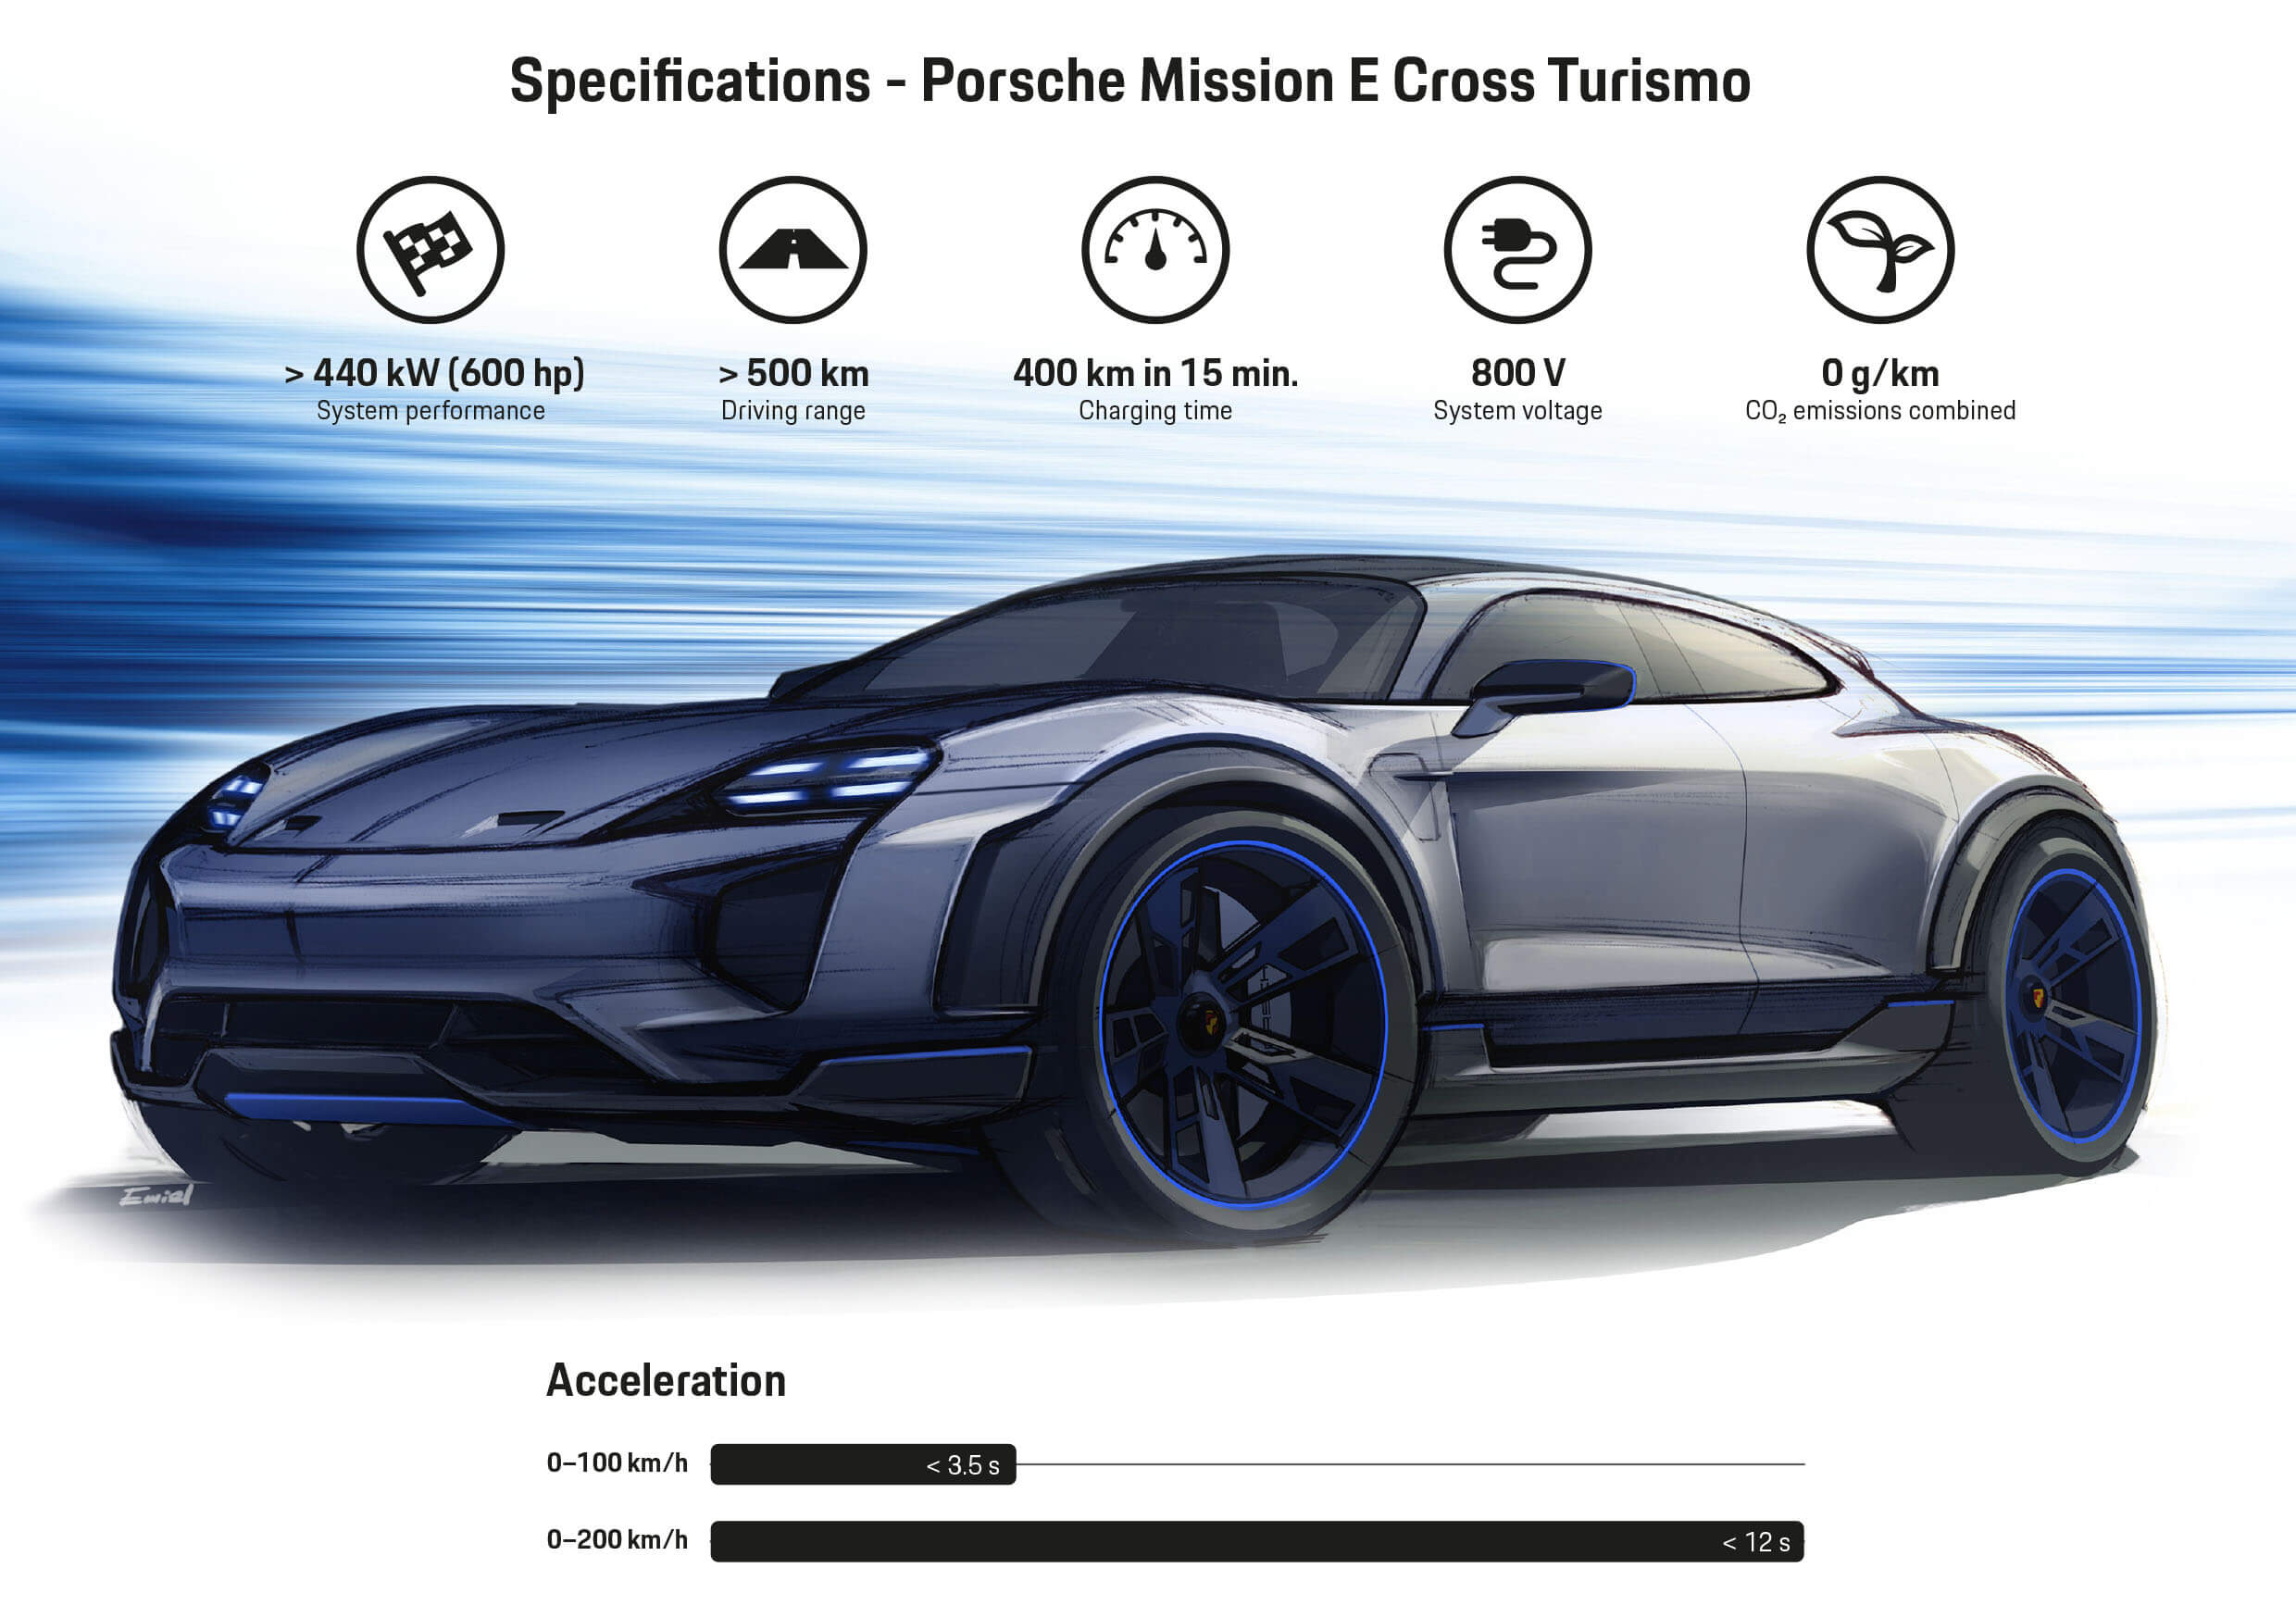 Характеристики Porsche Mission E Cross Turismo